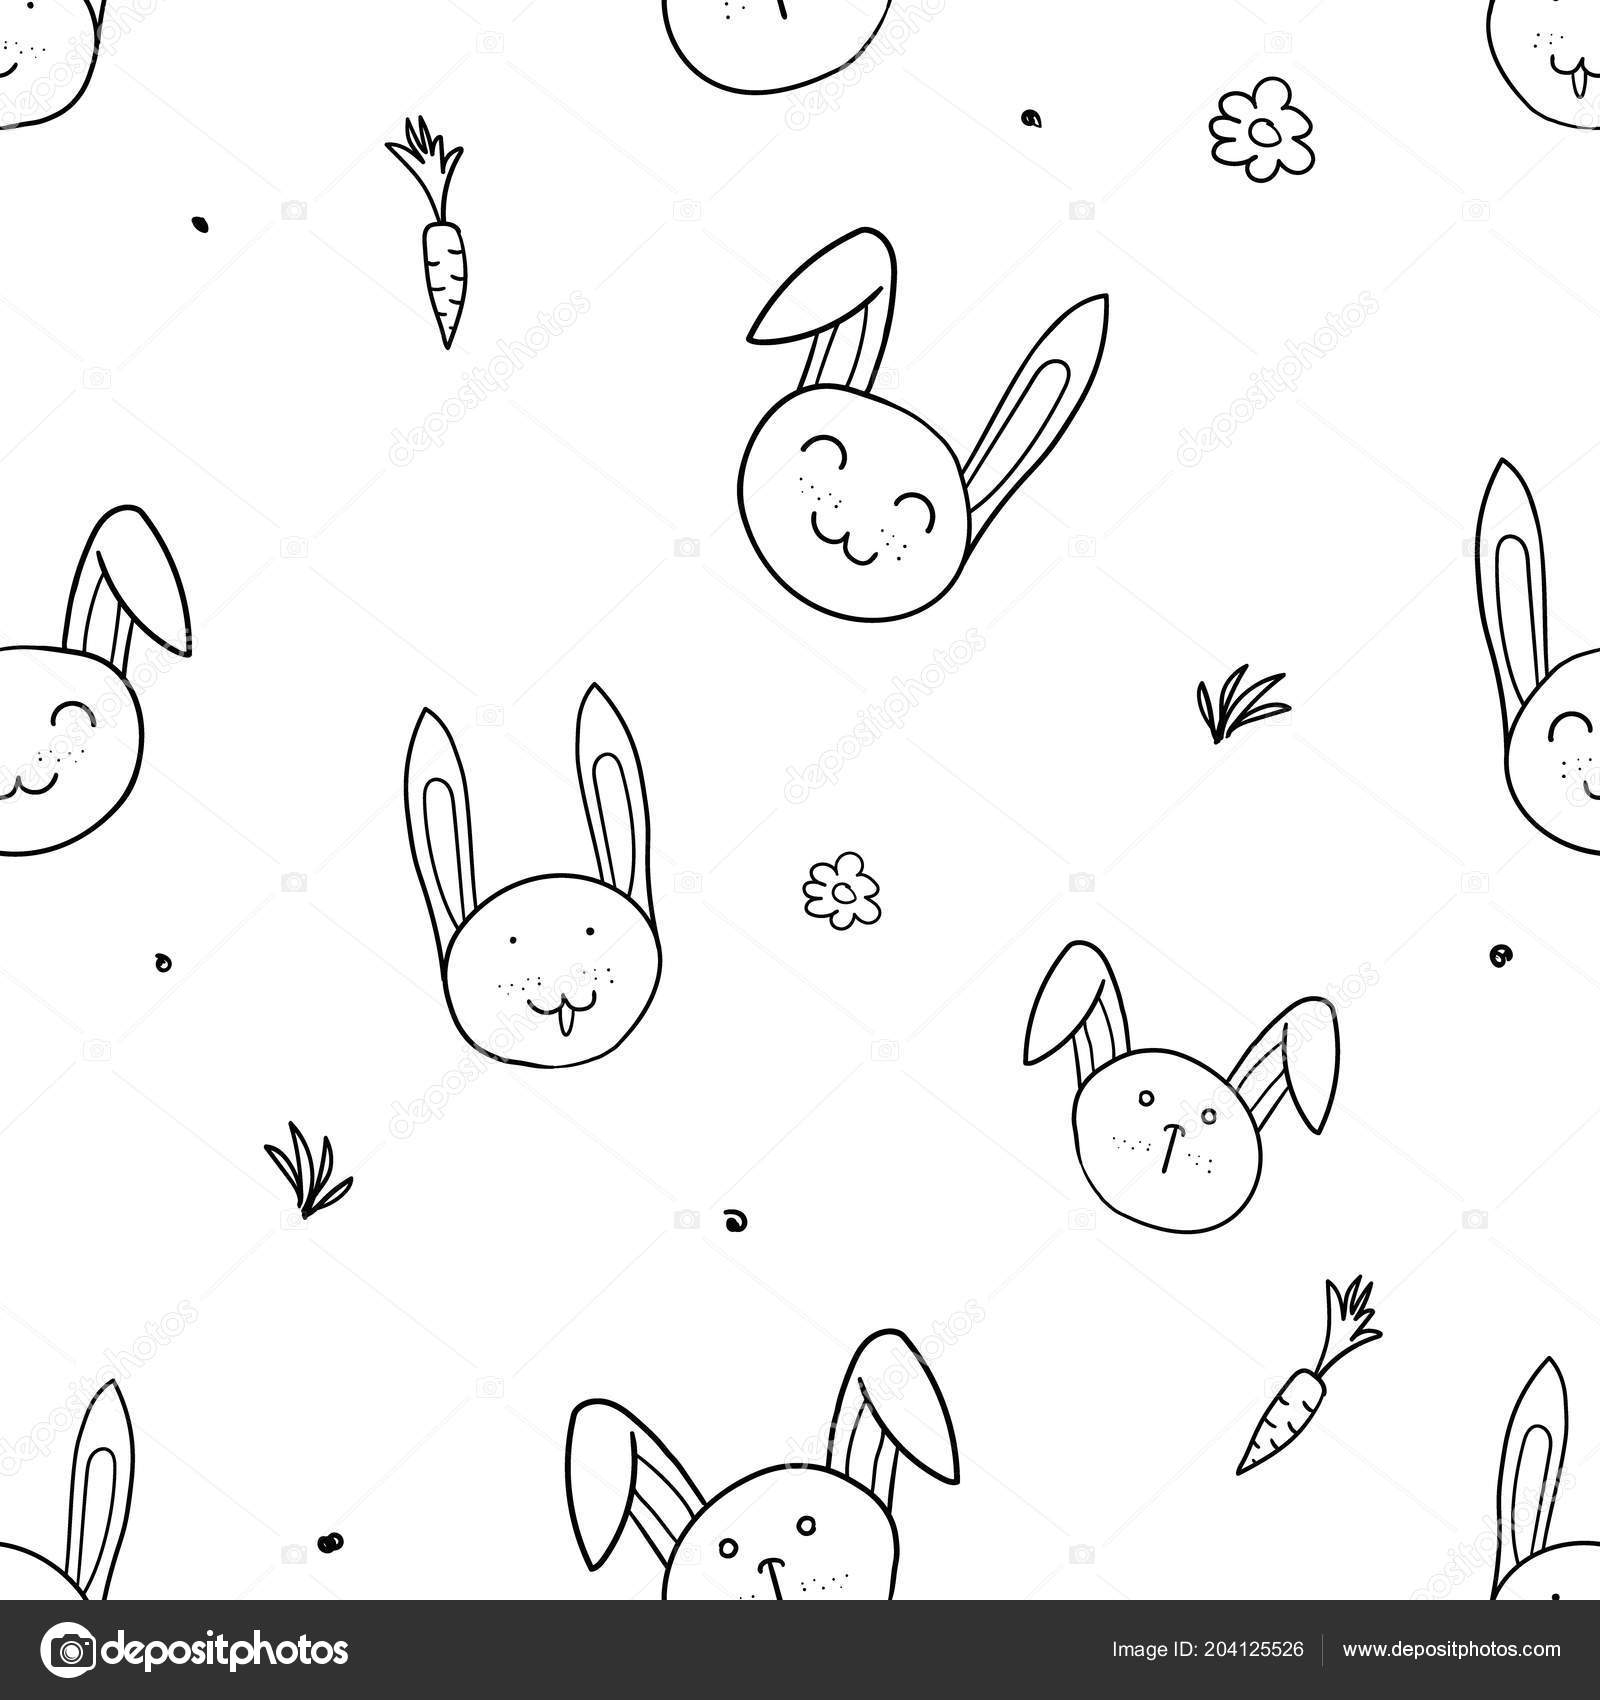 Hand drawn black and white simple doodle rabbit pattern in kids style seamless background with drawing vector sketch illustrations vector by